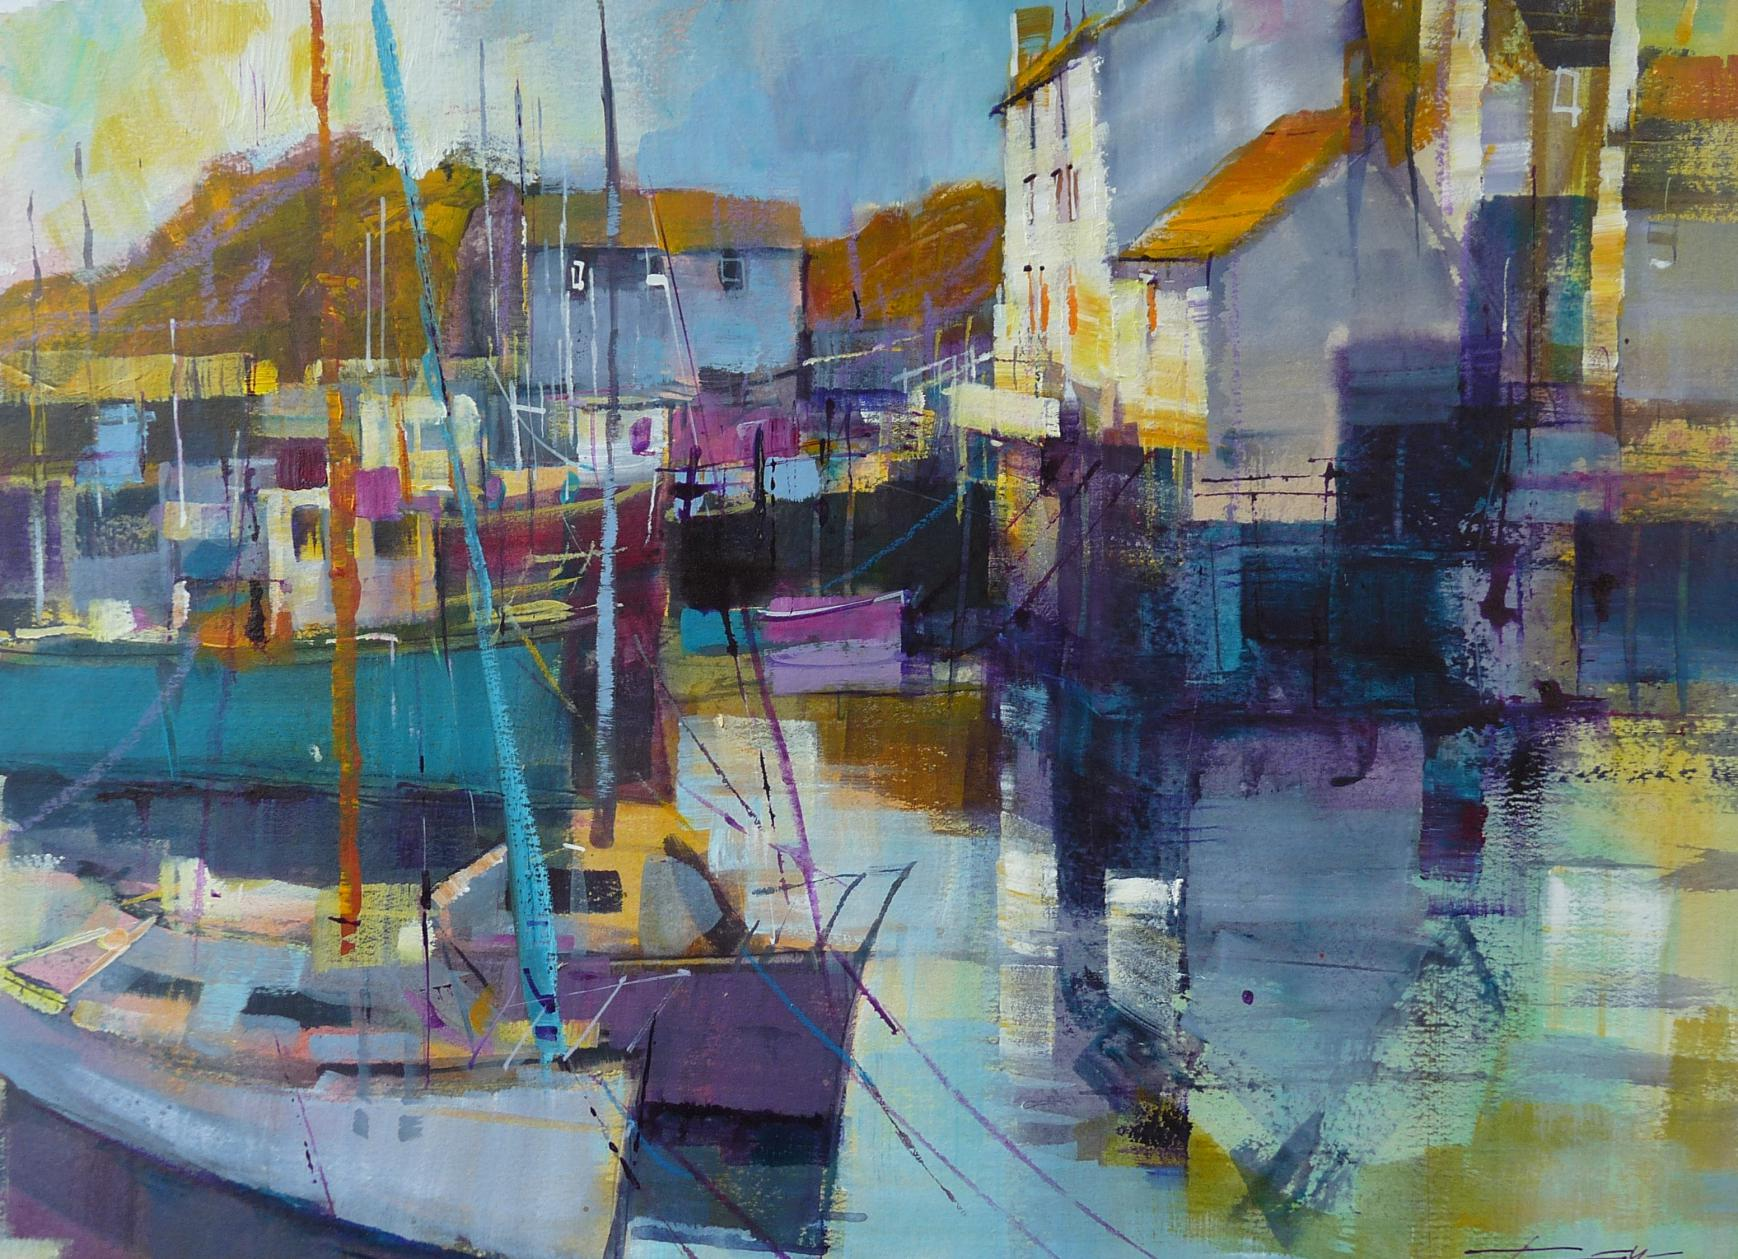 Sunshine and calm water, Polperro by Chris Forsey